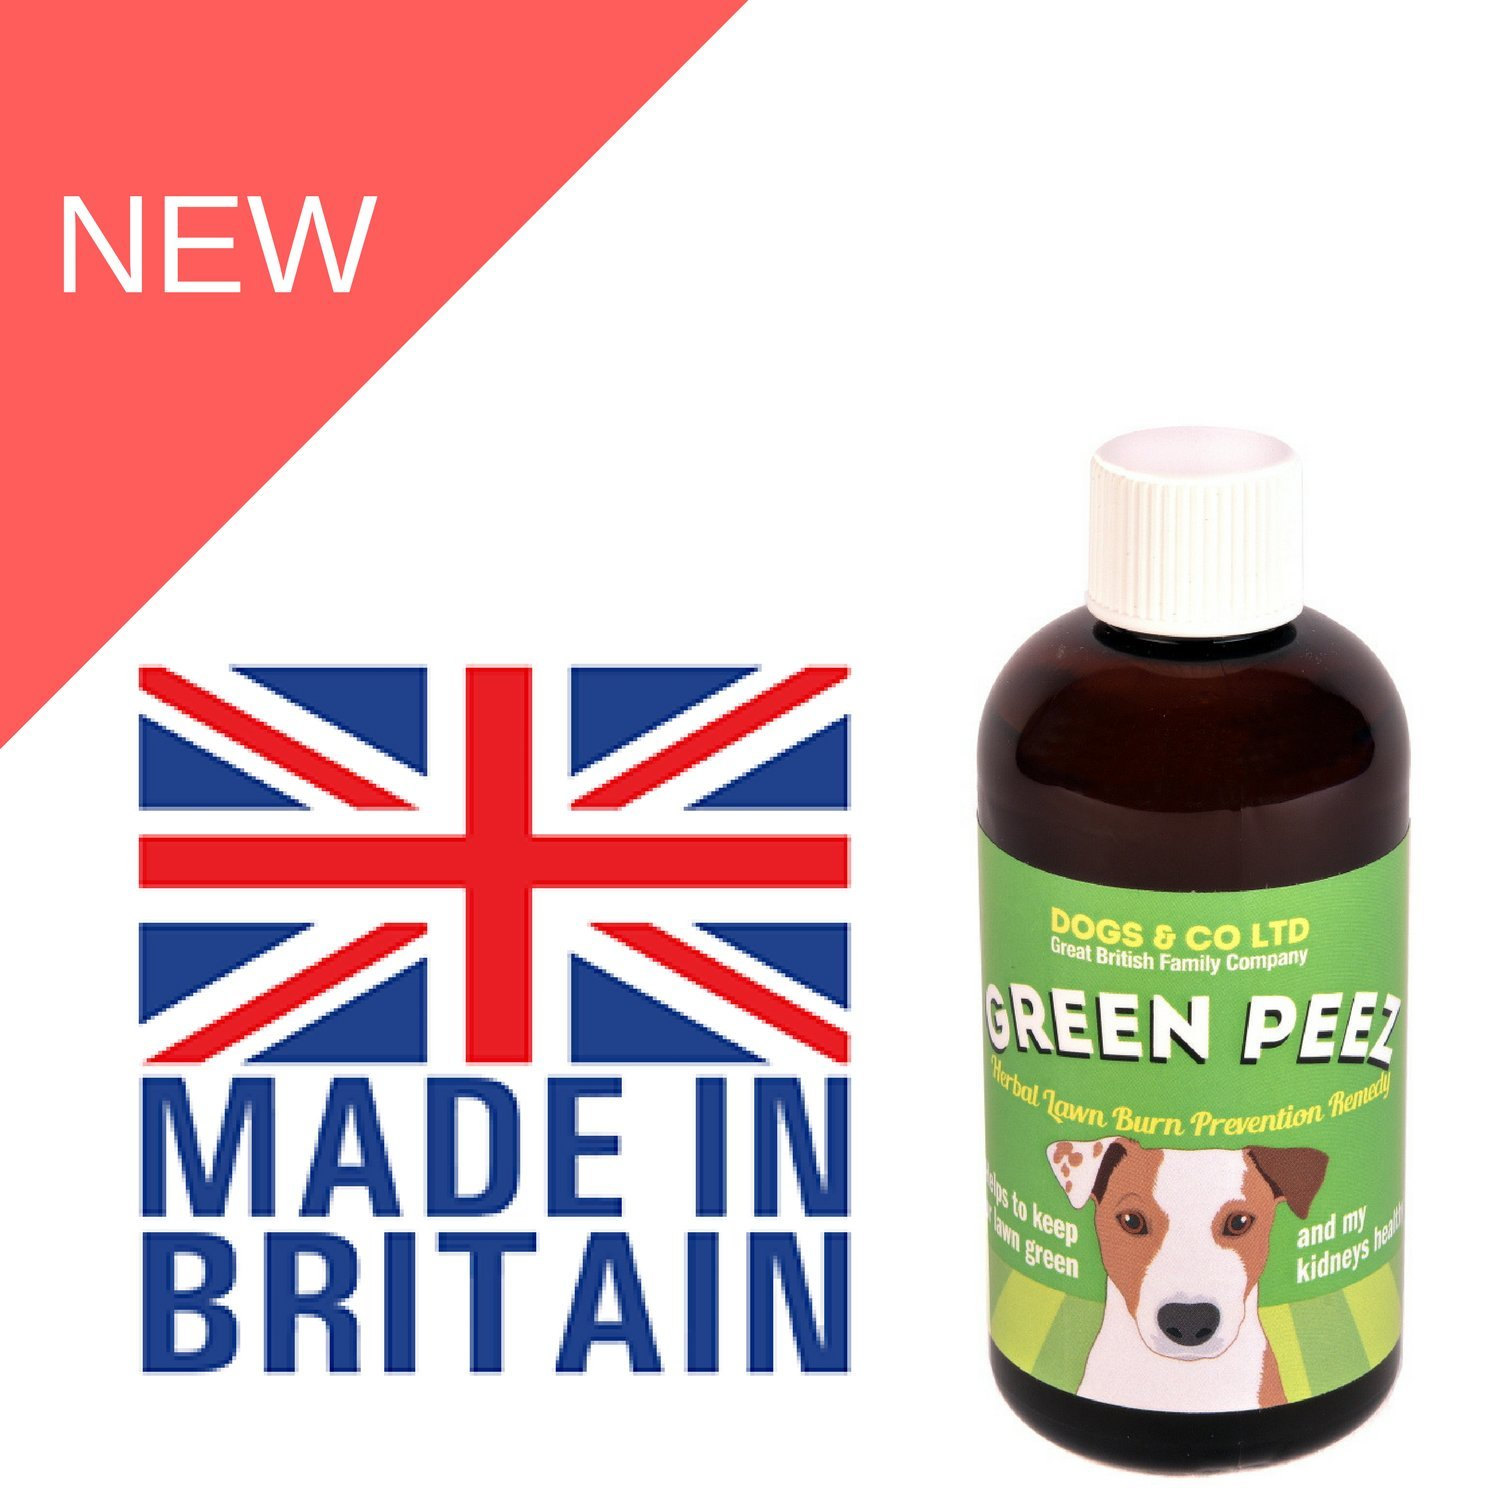 Green Peez. Lawn Burn Patch Prevention Saver for Brown or Burnt Grass Caused by Dog Urine. 100ml. Six month supply for medium dog. Add to Food.